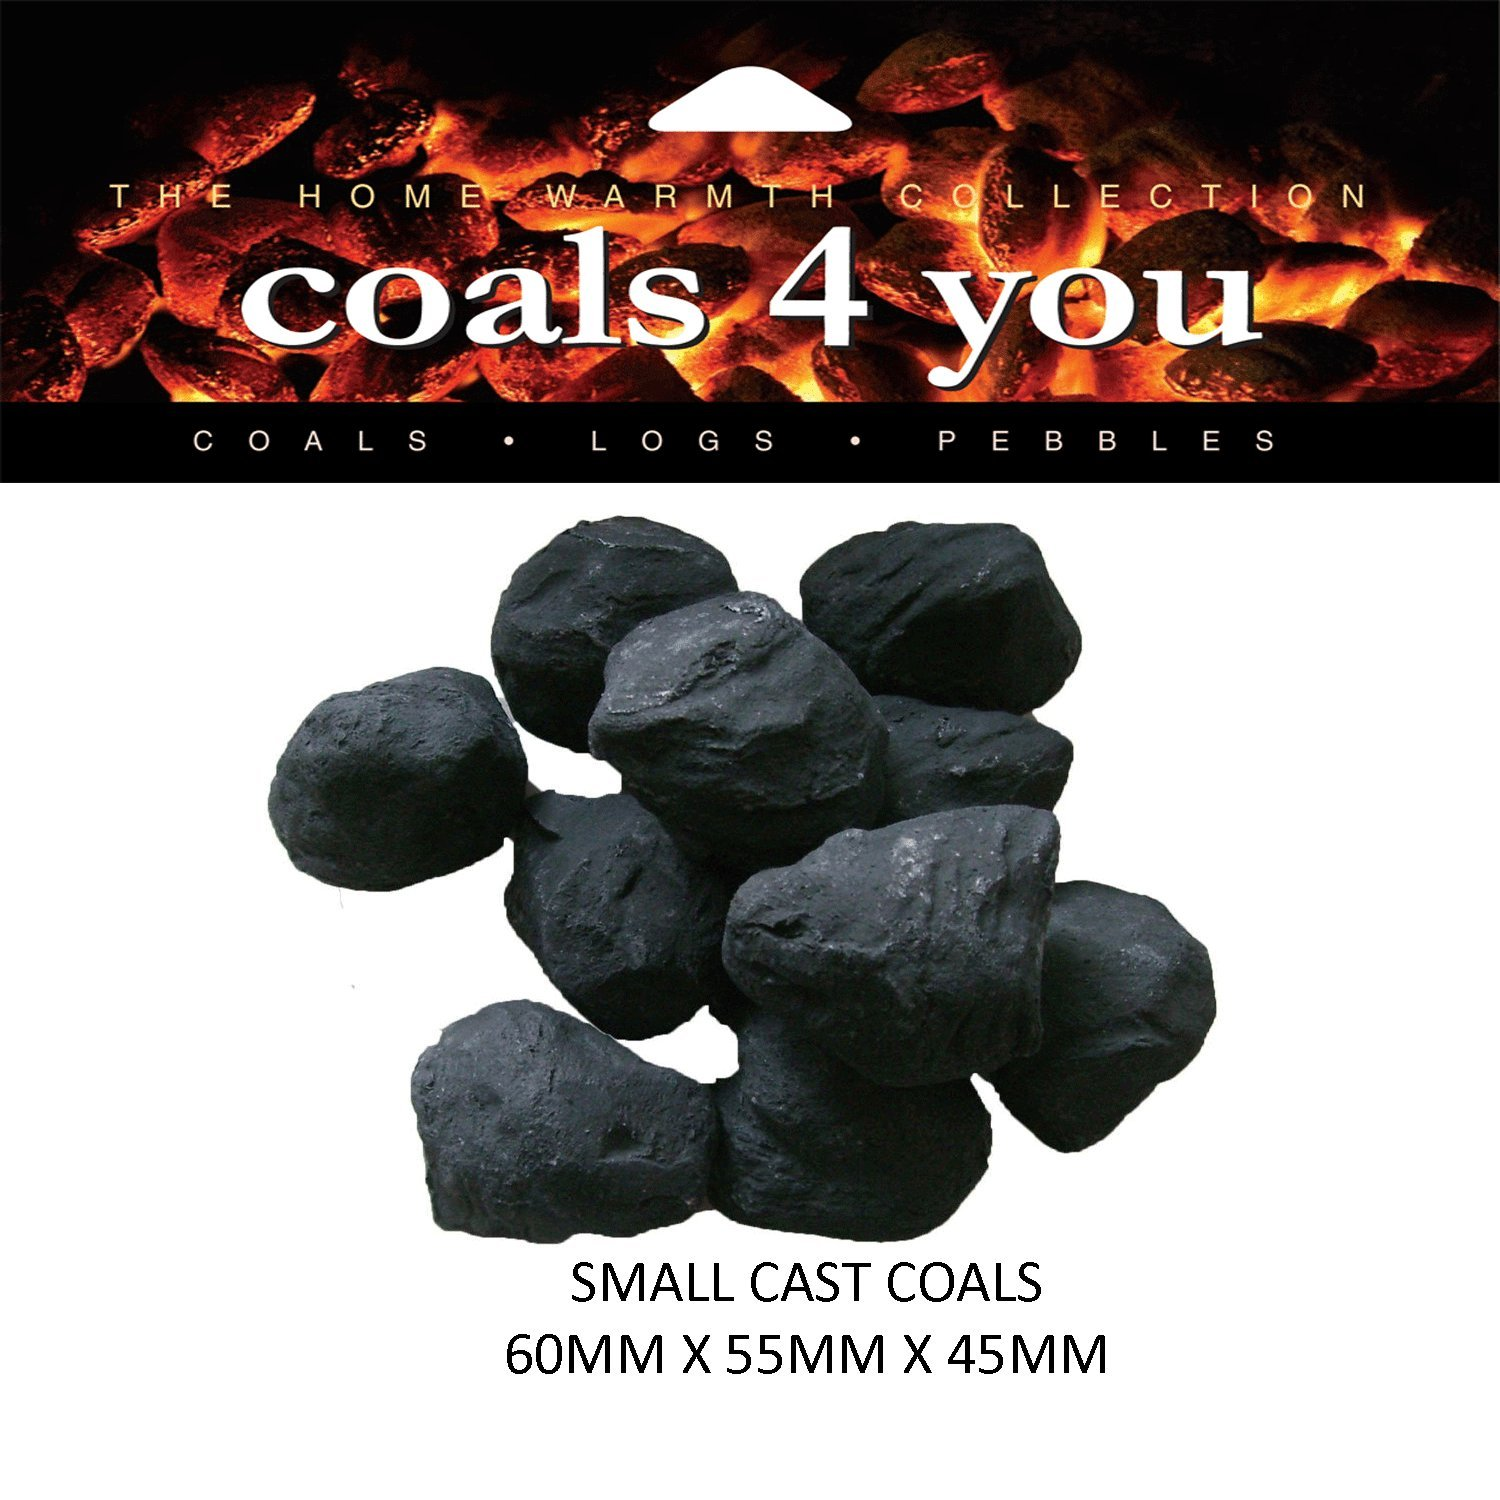 20 Gas Fire Ceramic Small Cast Coals Replacement Replacements/Bio Fuels/Ceramic/Boxed In branded Coals 4 You Packing